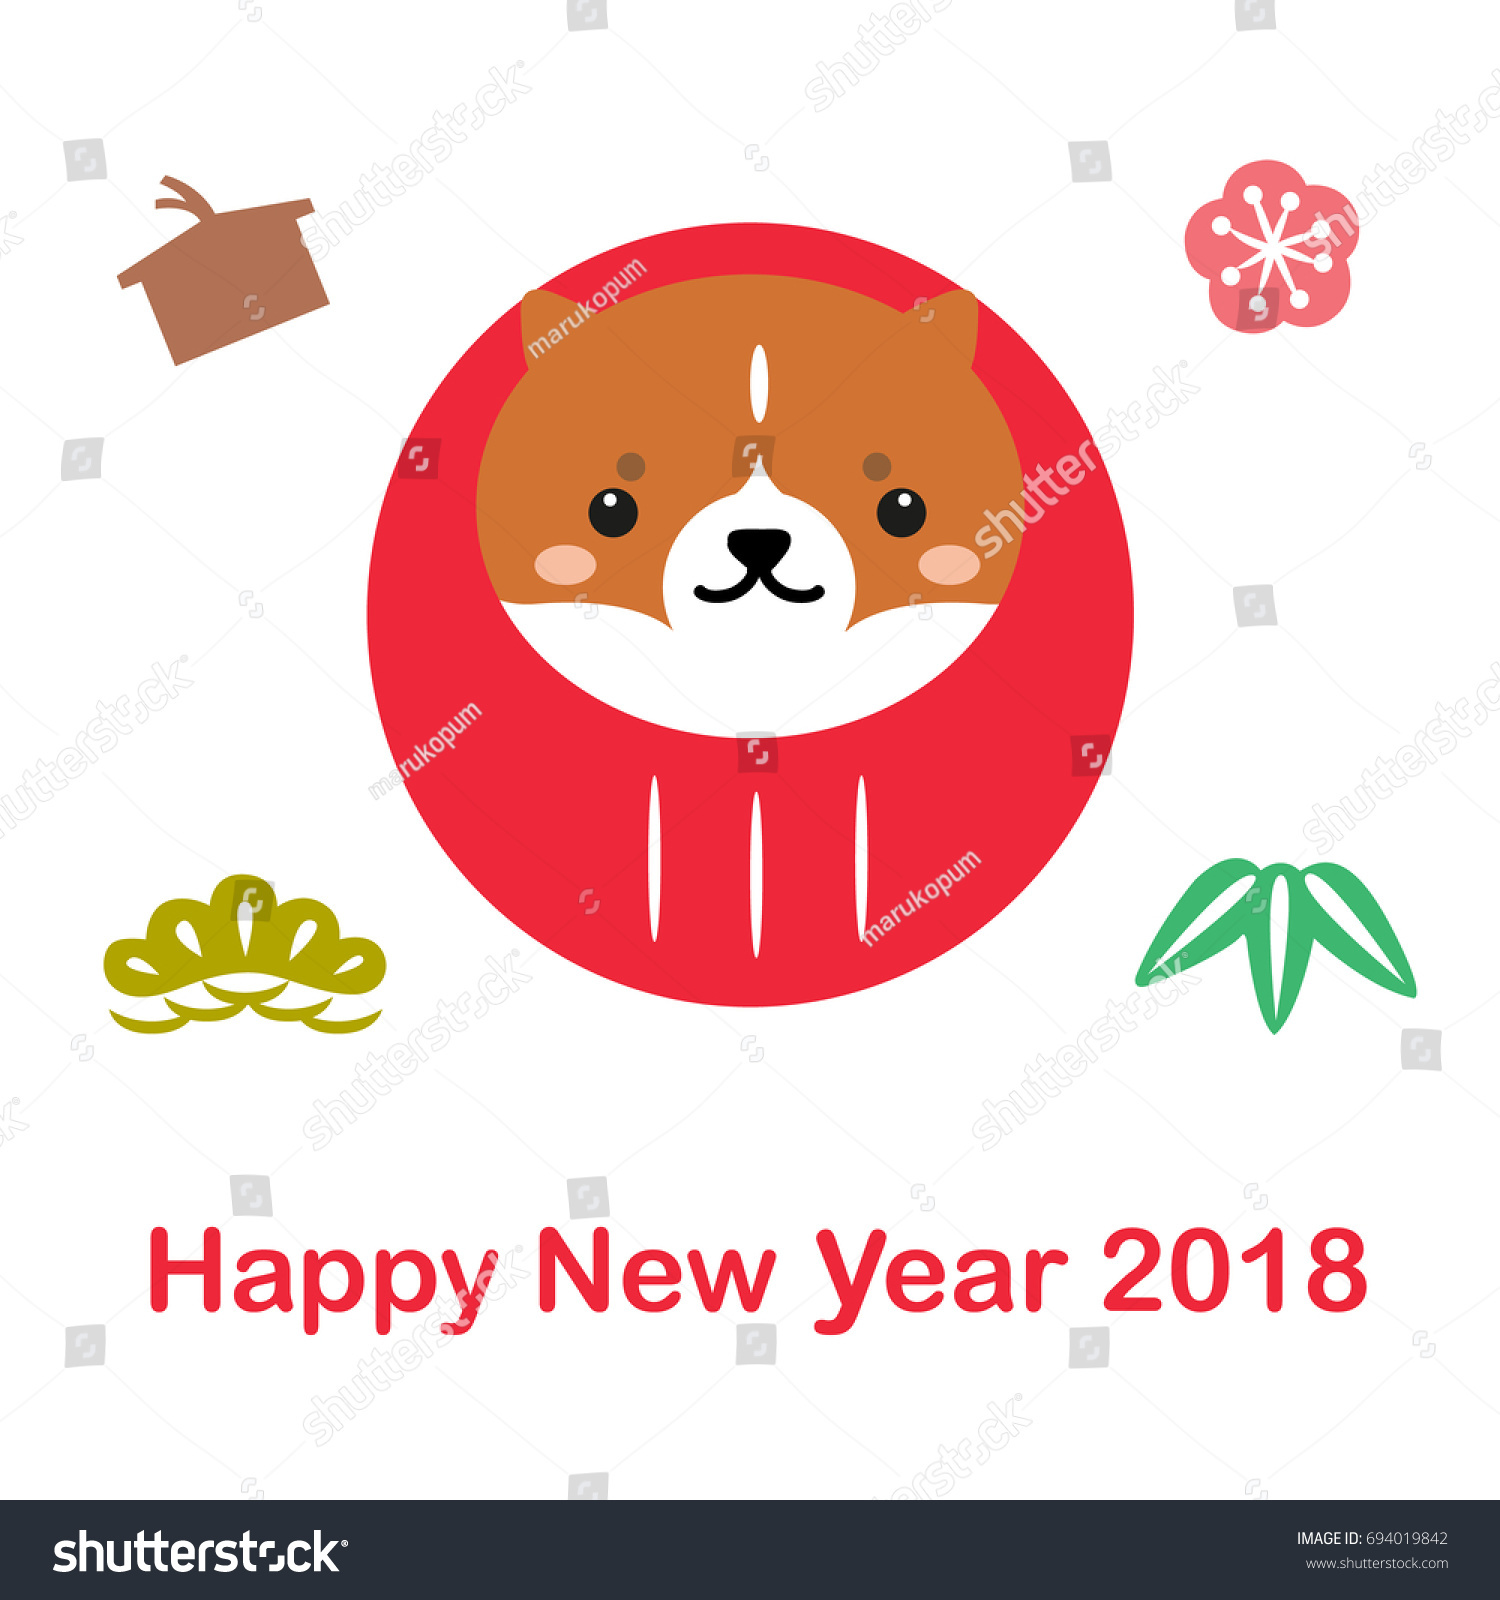 happy new year 2018 cardcorgi dog good luck doll with japanese element icons such